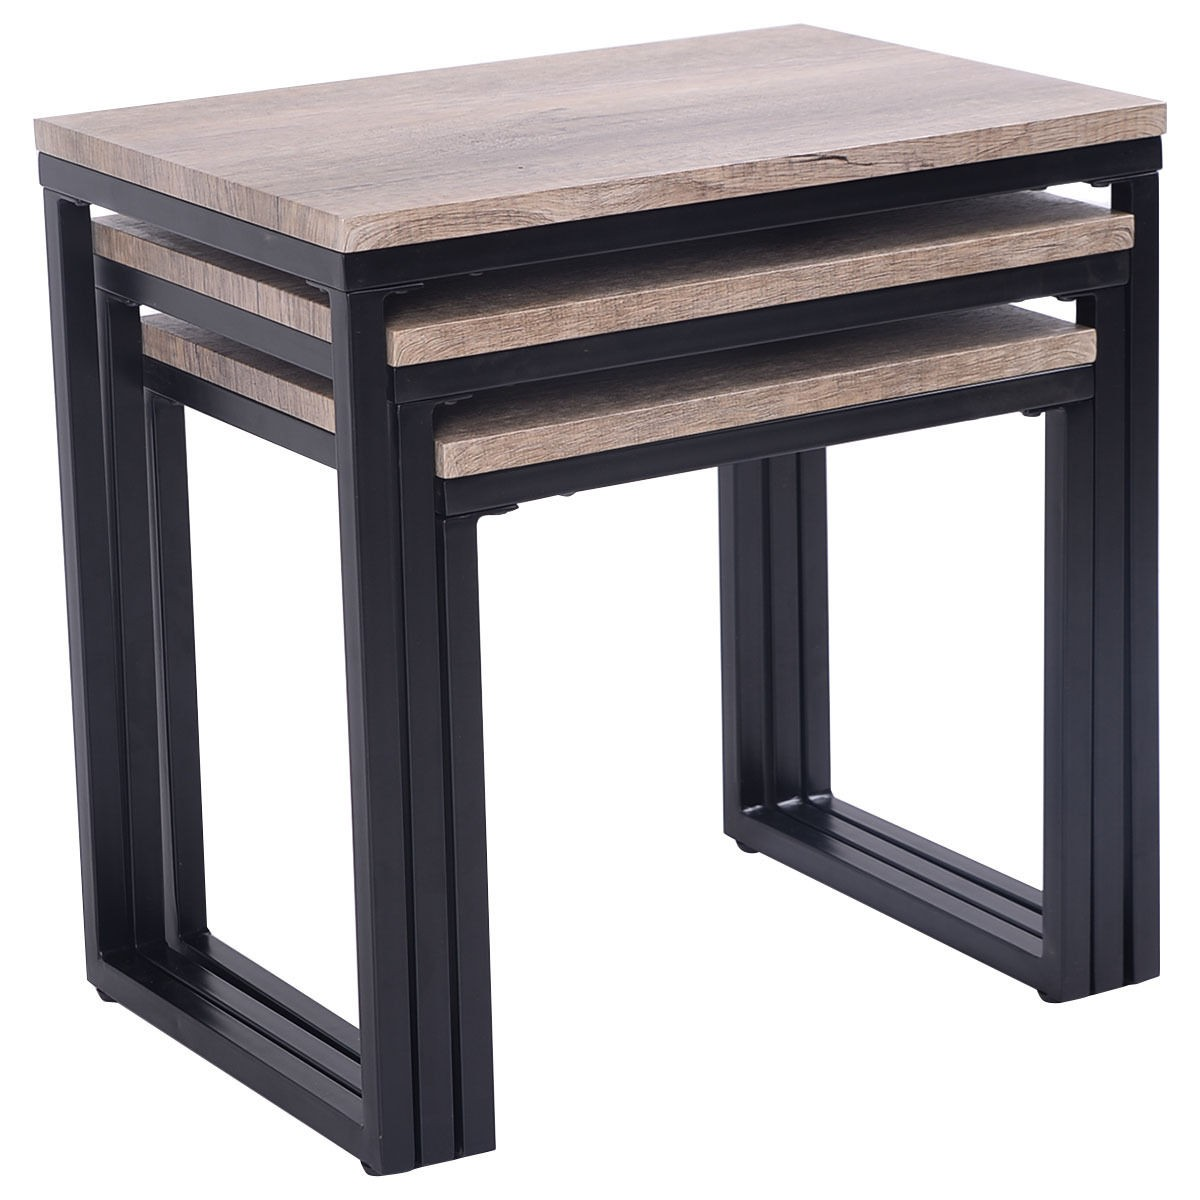 3 Piece Nesting Coffee & End Table Set Wood Modern Living